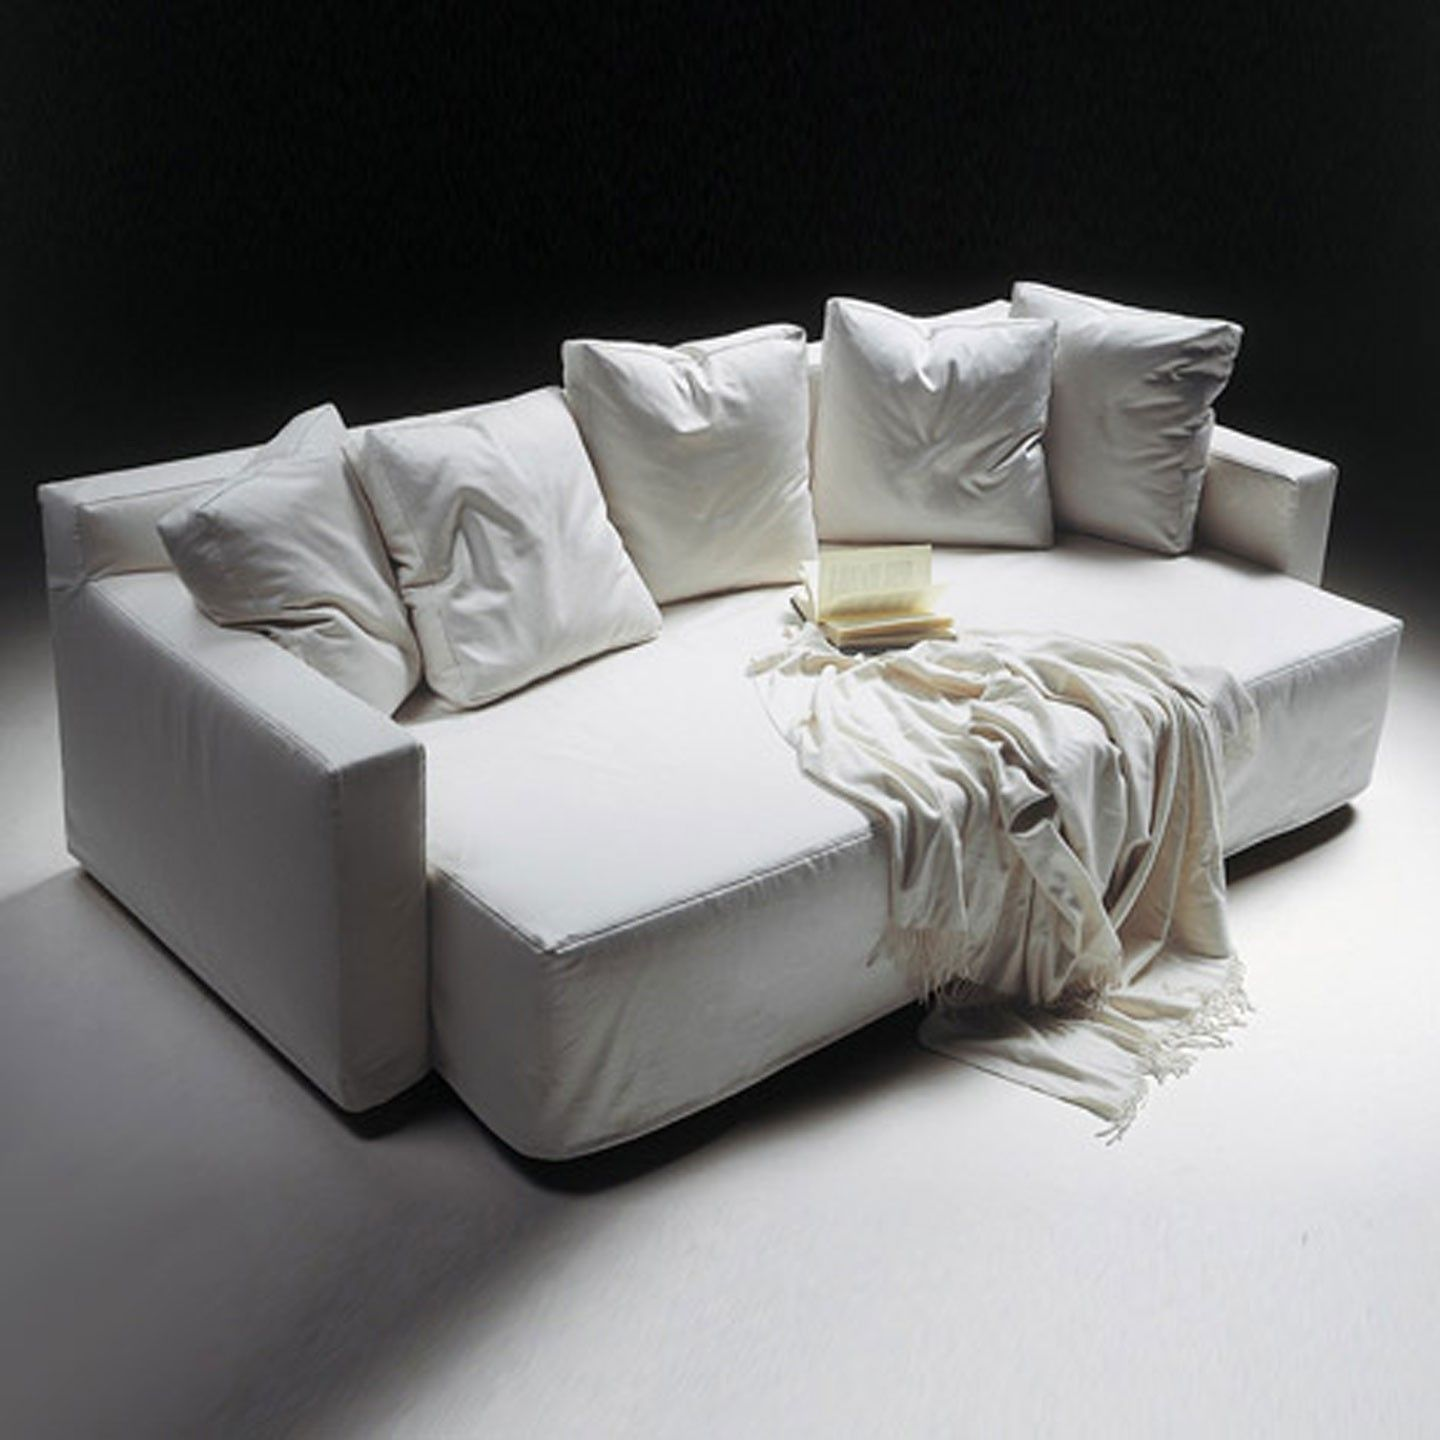 Winny Quatro Sofabed Regular Sofa Slides Out For Extra Deep Sofa